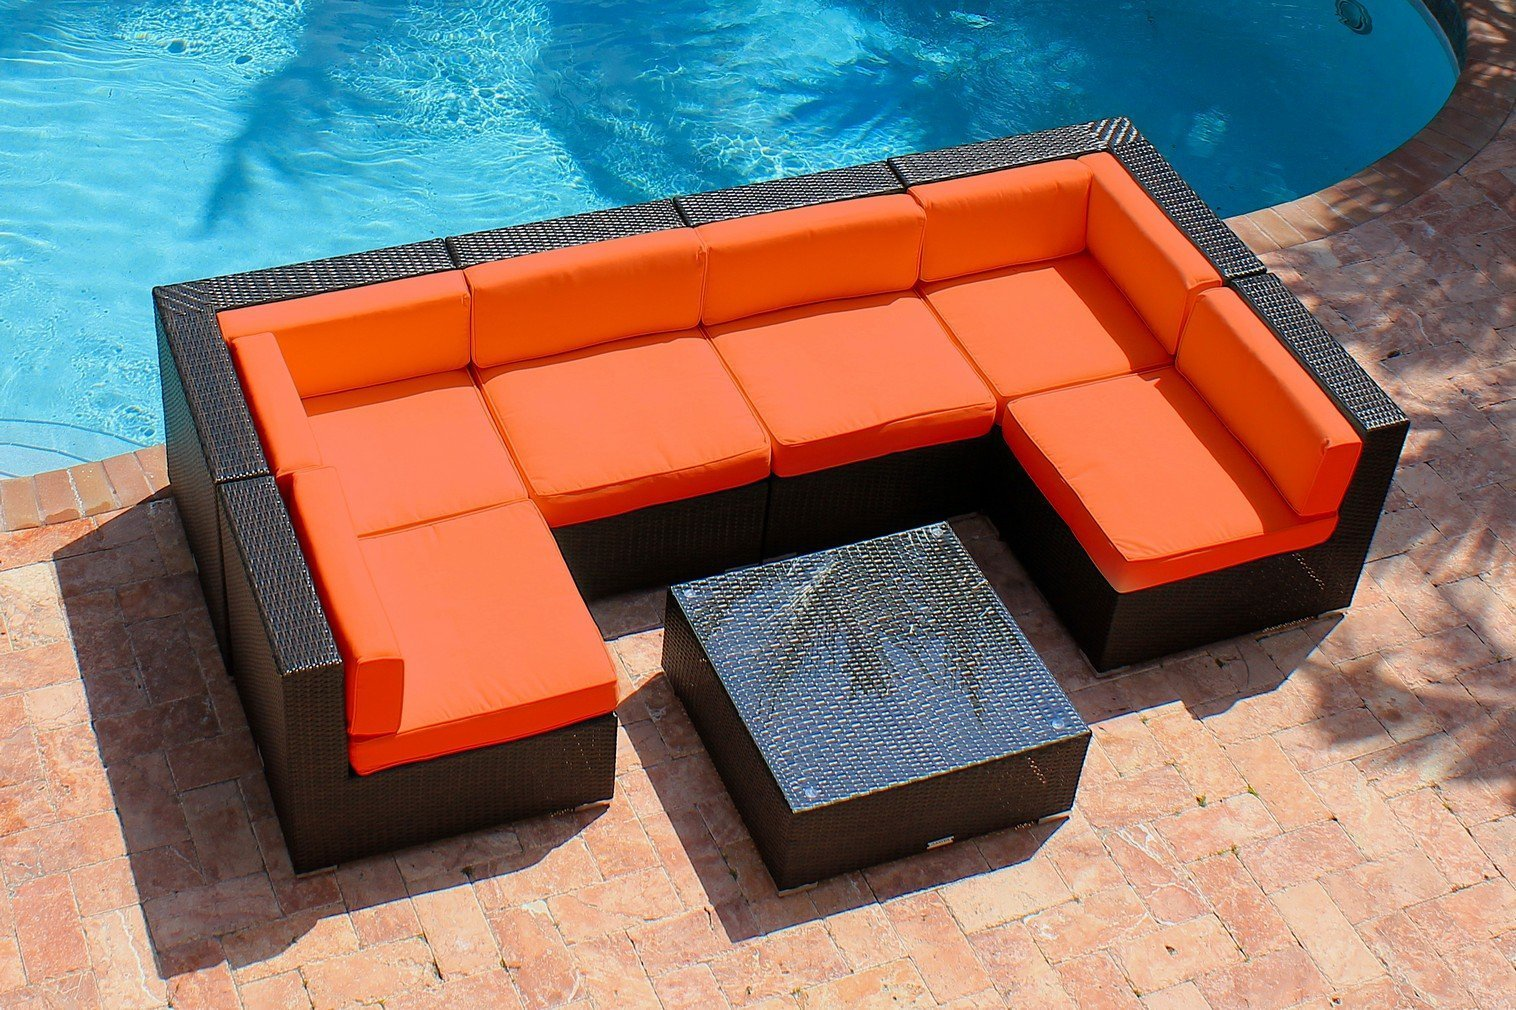 AKOYA Wicker Collection - 7 Piece Outdoor Patio Furniture Modern Sofa Couch Sectional Modular Set, Orange